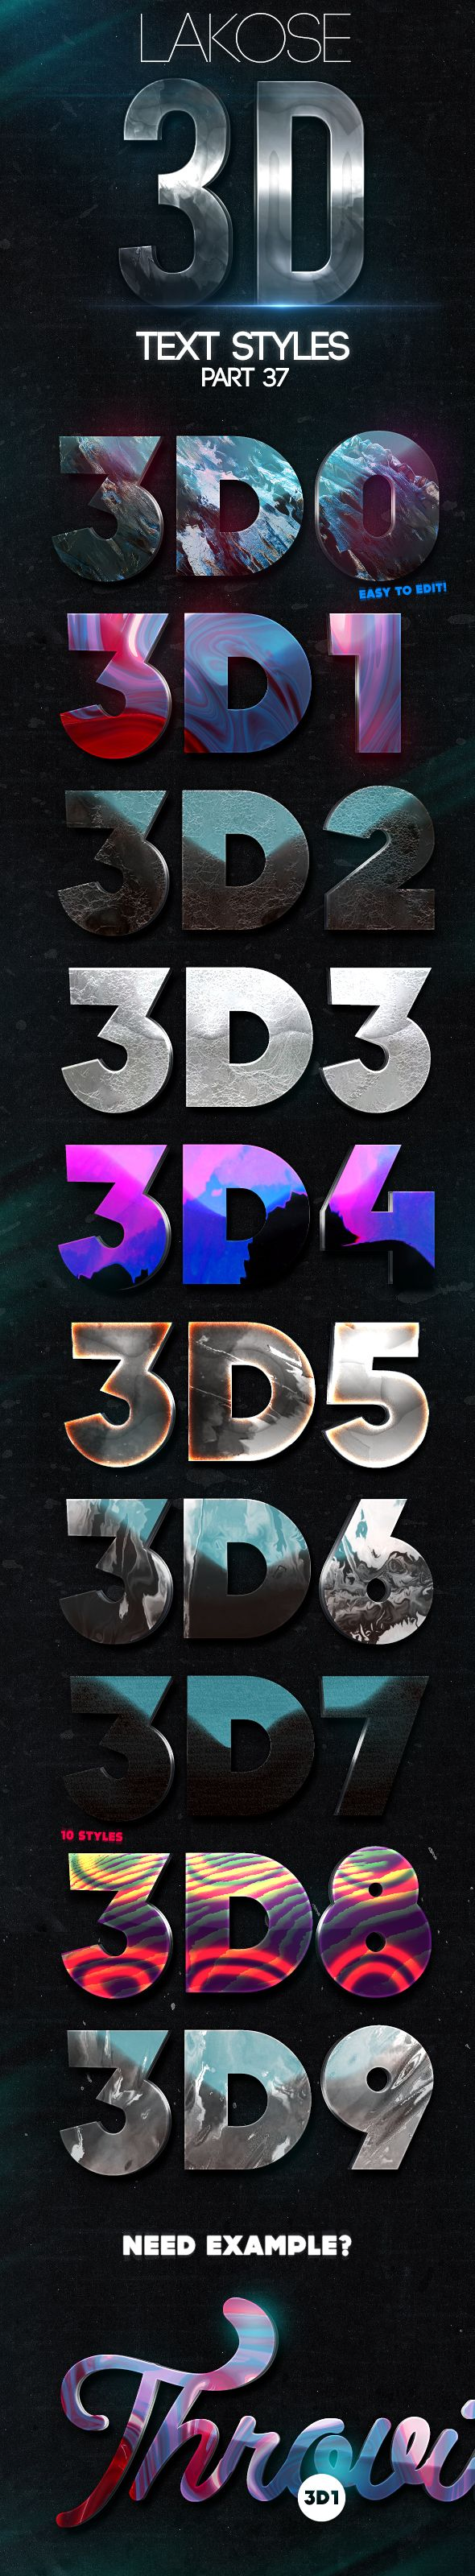 Mysterious poster design with 3d text - Lakose 3d Text Styles Part 37